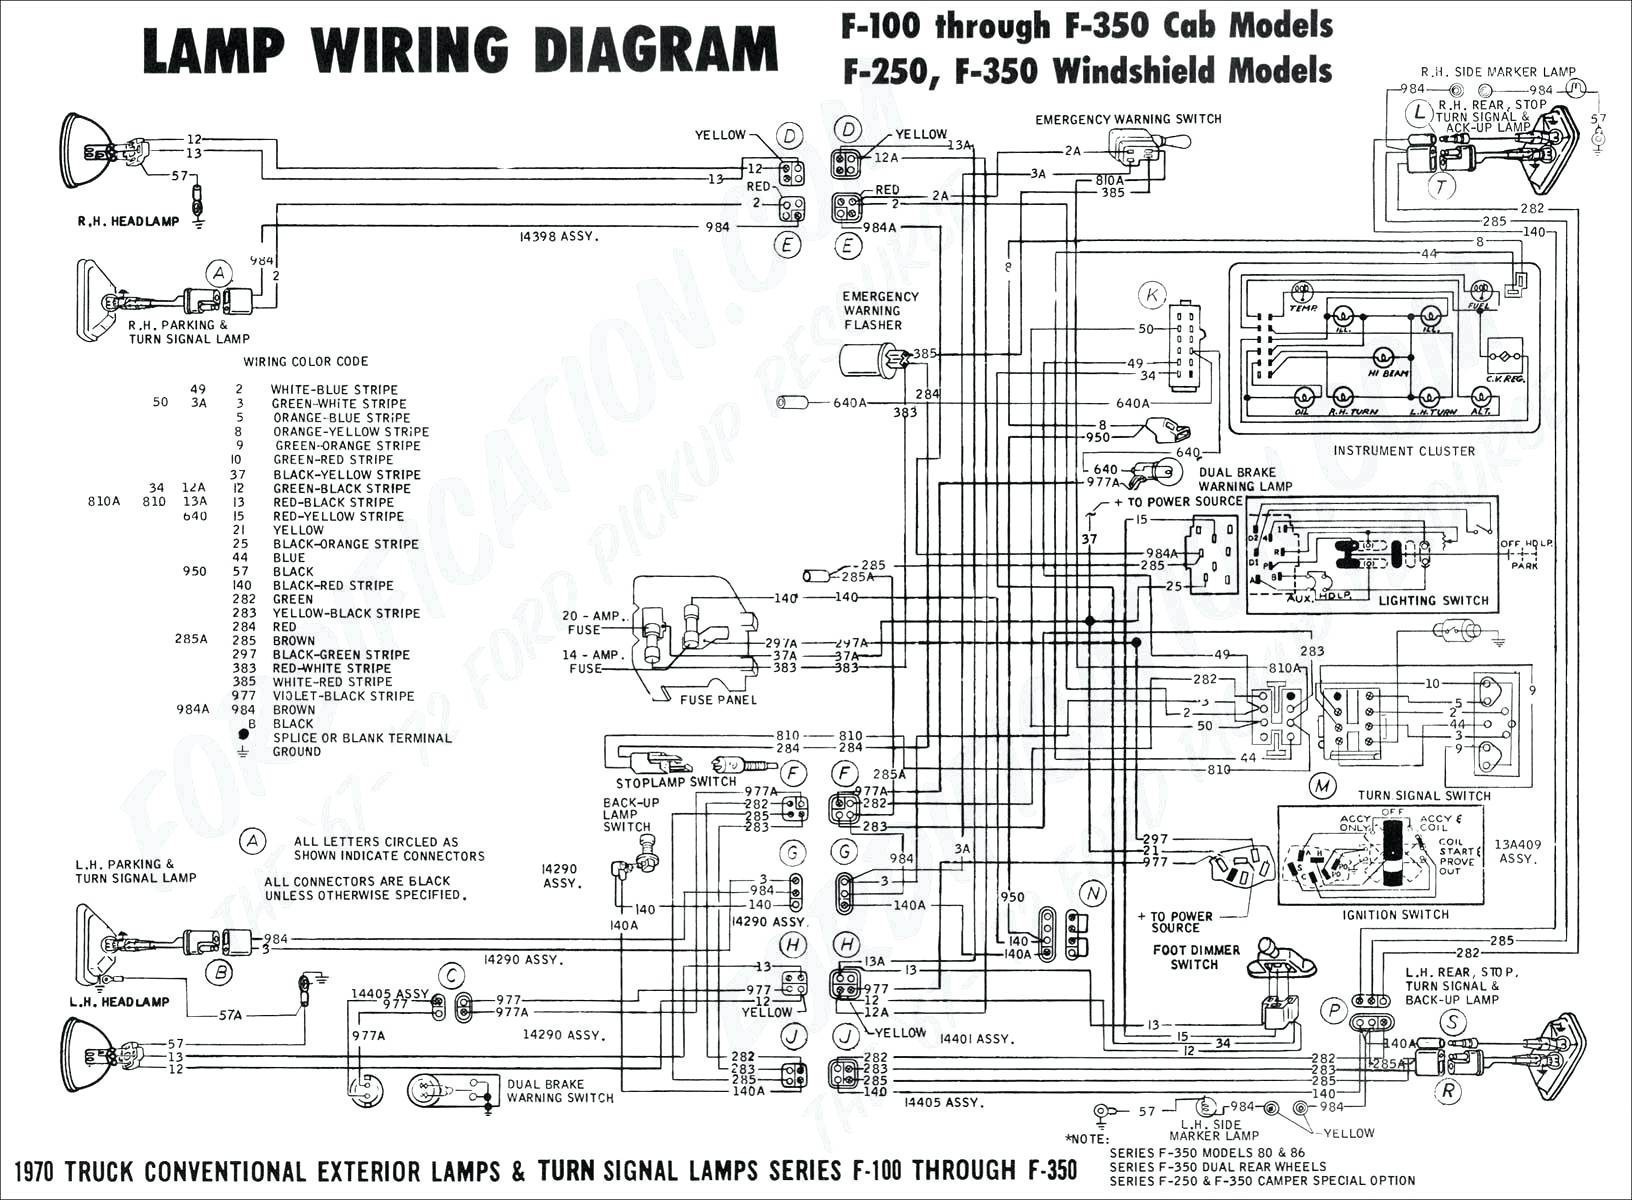 Power Window Wiring Diagram Wiring Diagram Power Window Avanza Fresh Wiring Diagram Golf 5